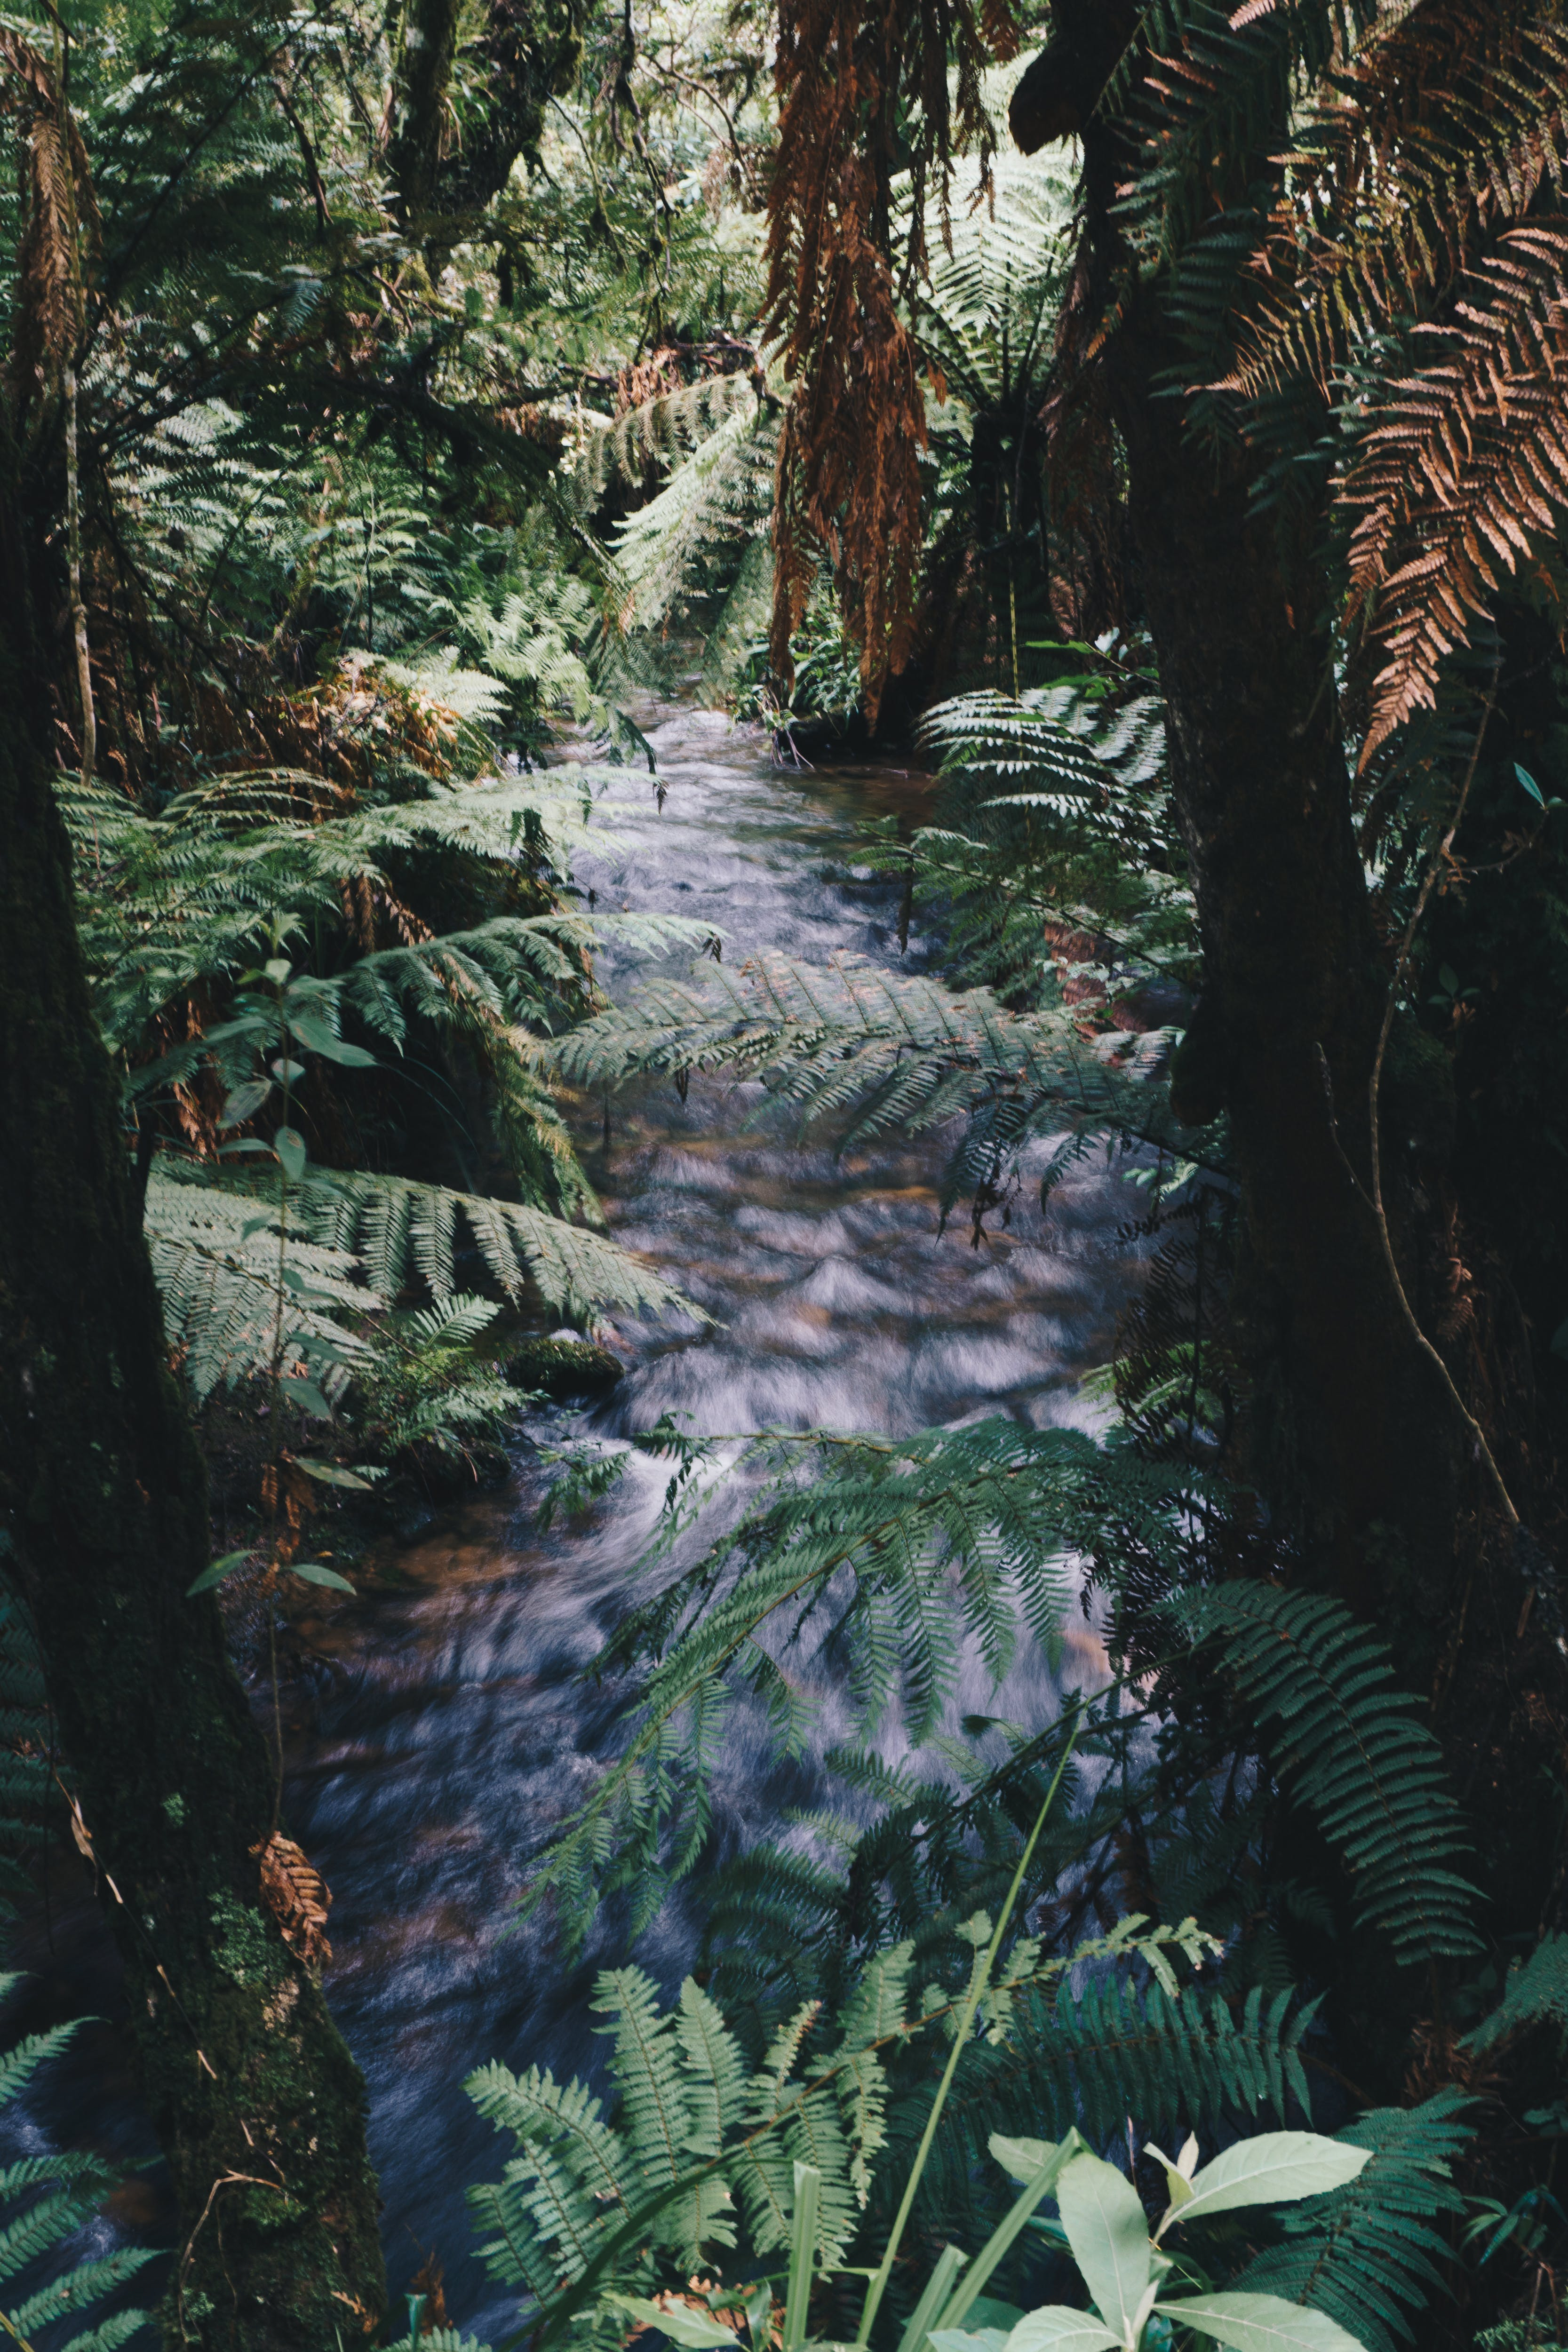 Photography of River Near Fern Plants